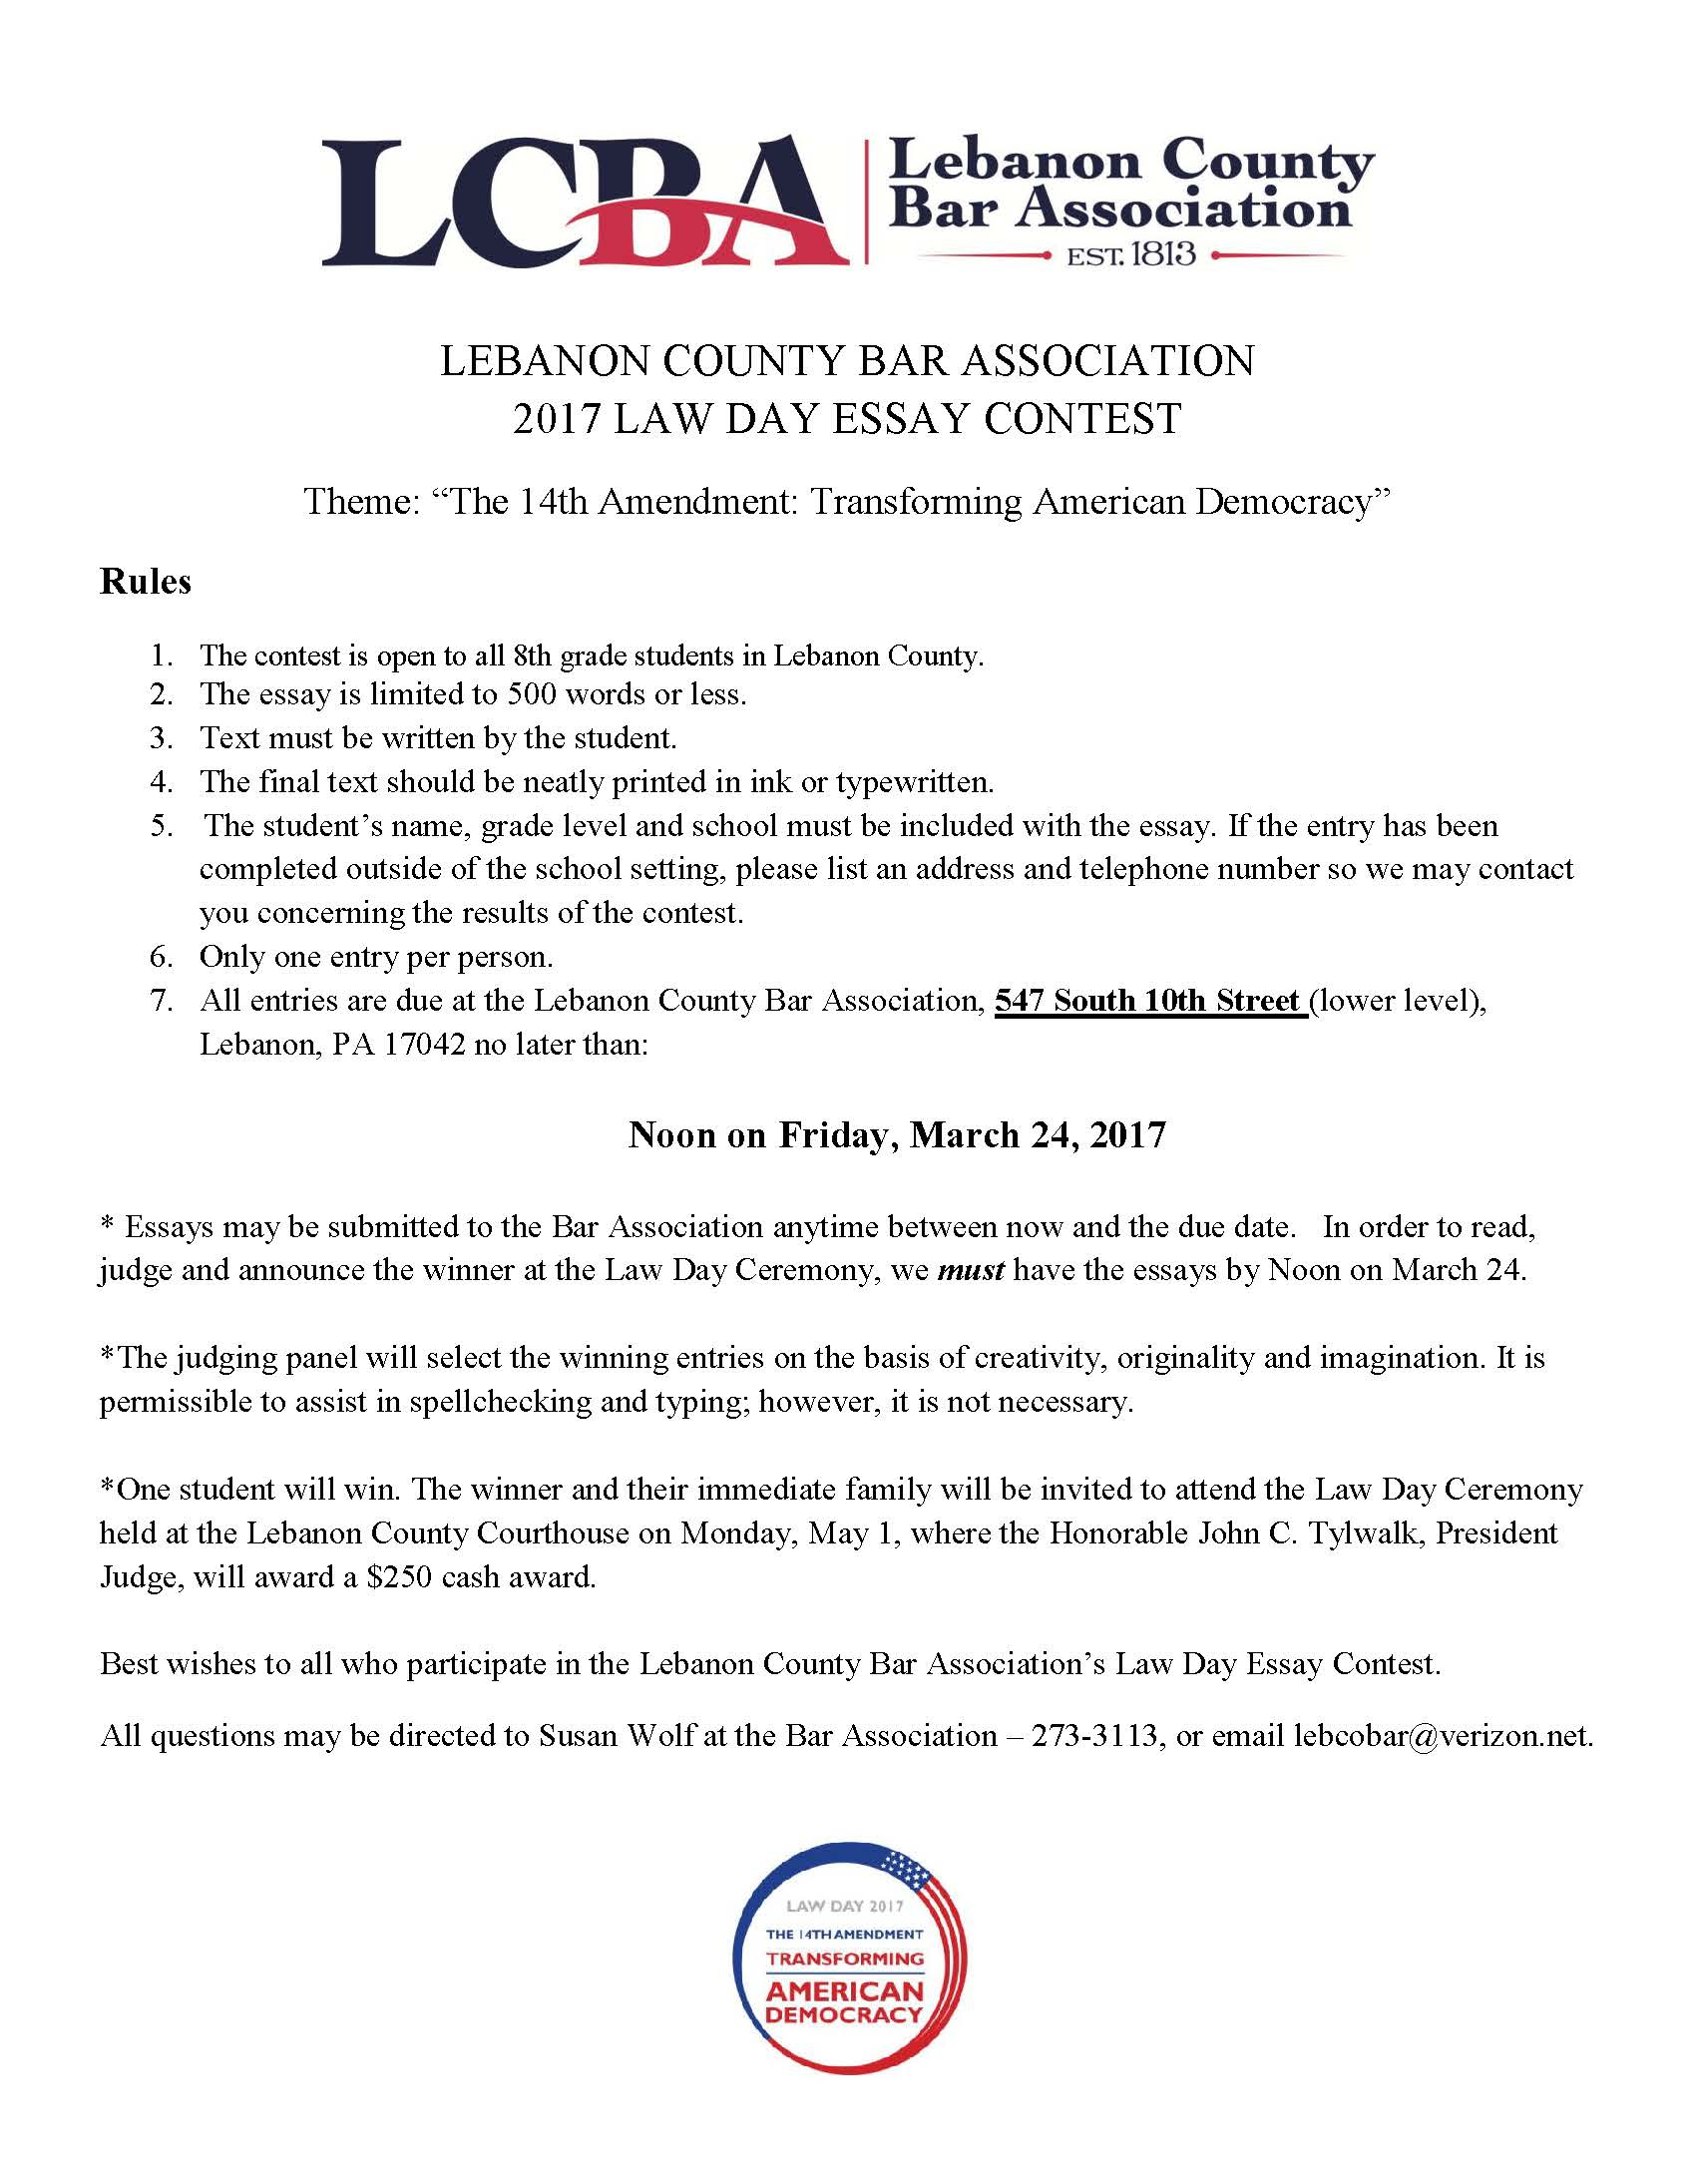 news events county bar association president judge john c tylwalk will present the award to the winner contest deadline is noon on 24 rules and guidelines for the essay contest